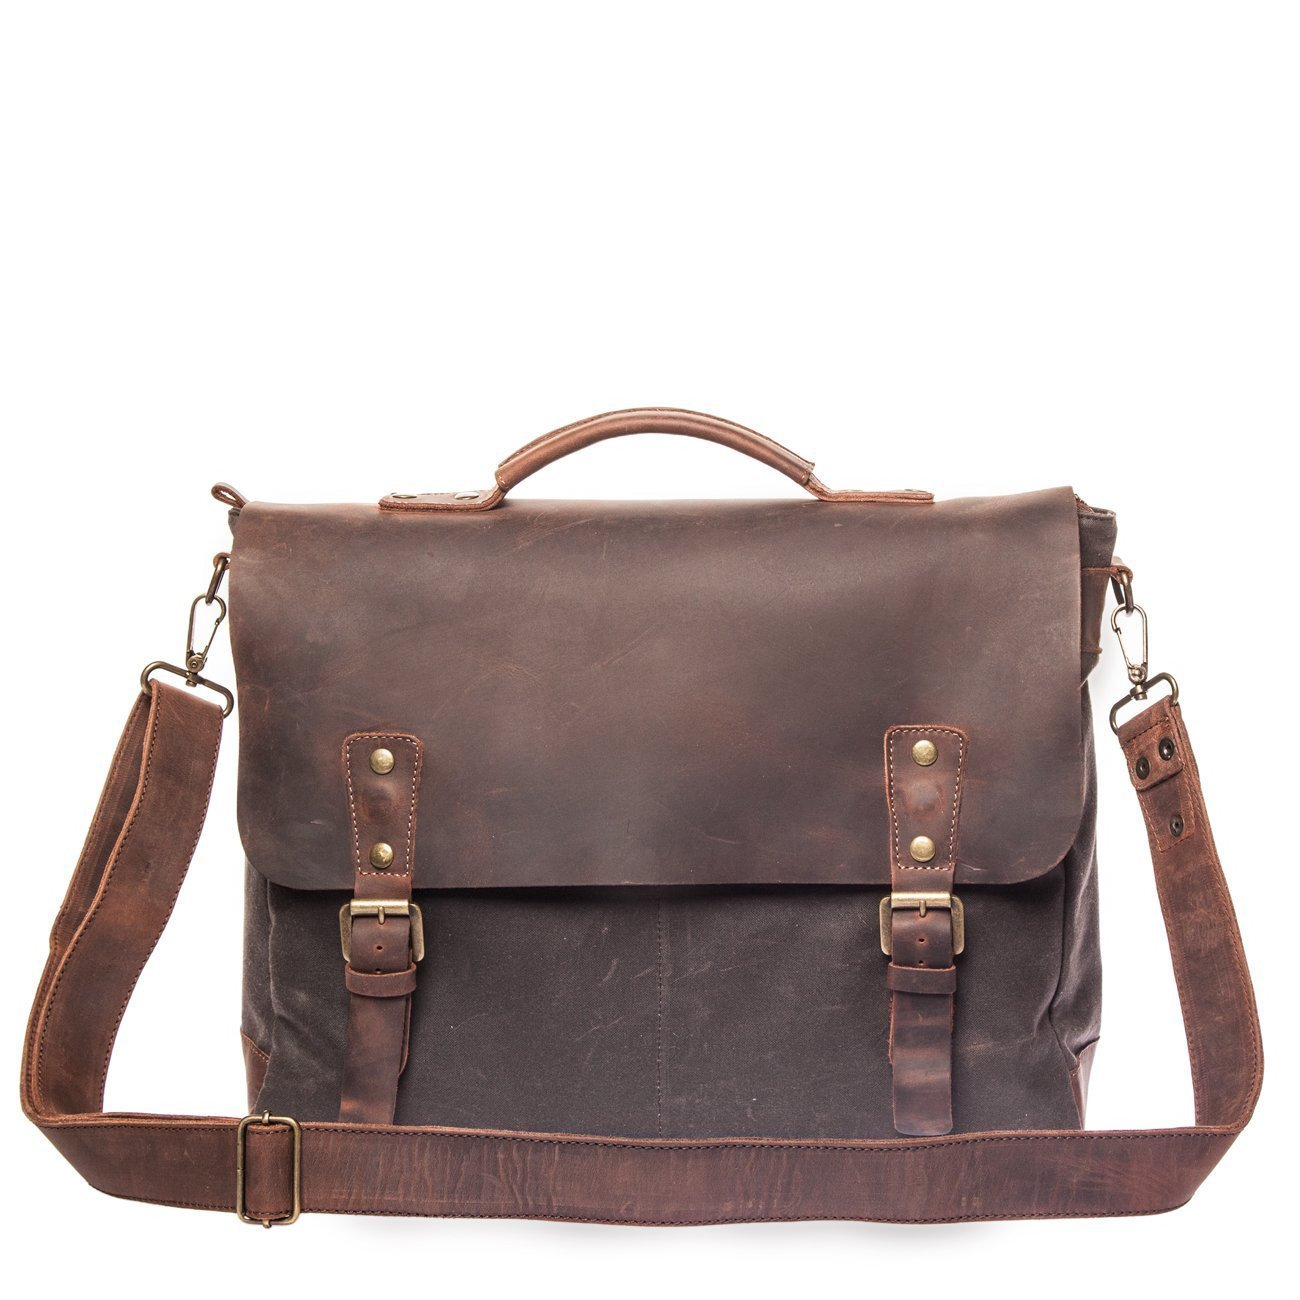 Vintage Handmade Satchel Bag - British Made Waxed Canvas & Alcanena Leather - Laptop Briefcase for Man